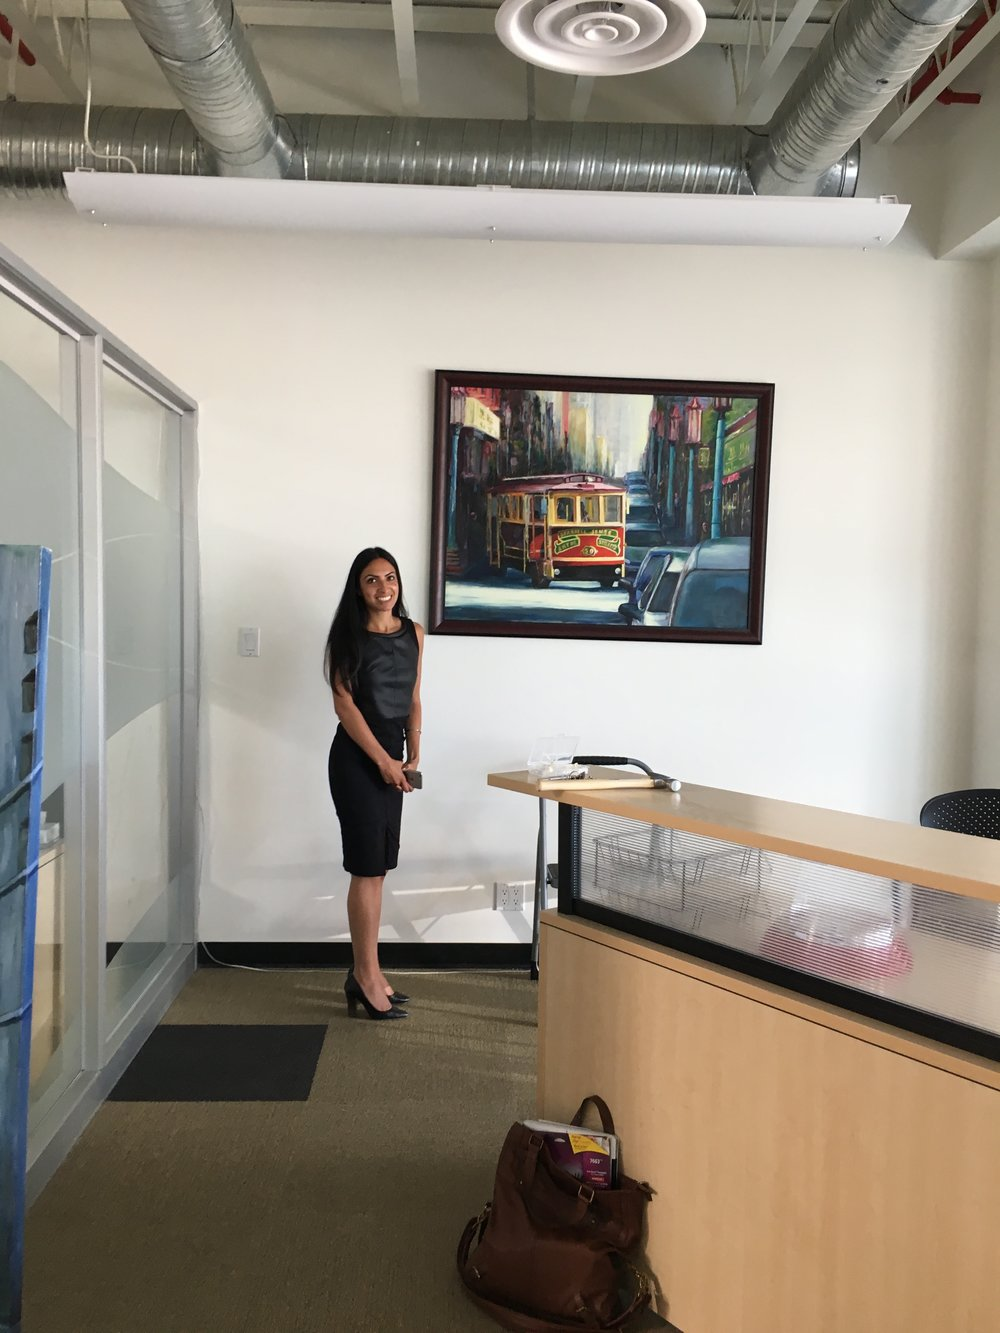 This a picture of a law firm on 124st. This lawyer is very happy with the rental.  It has increaced traffic at their firm, it has allowed them to be much more approachable and engaging with the community, while it shows they are very  supportive of artists. Creating a beautiful reputation for them and the artists at hand. Thank you VIRK LAW.